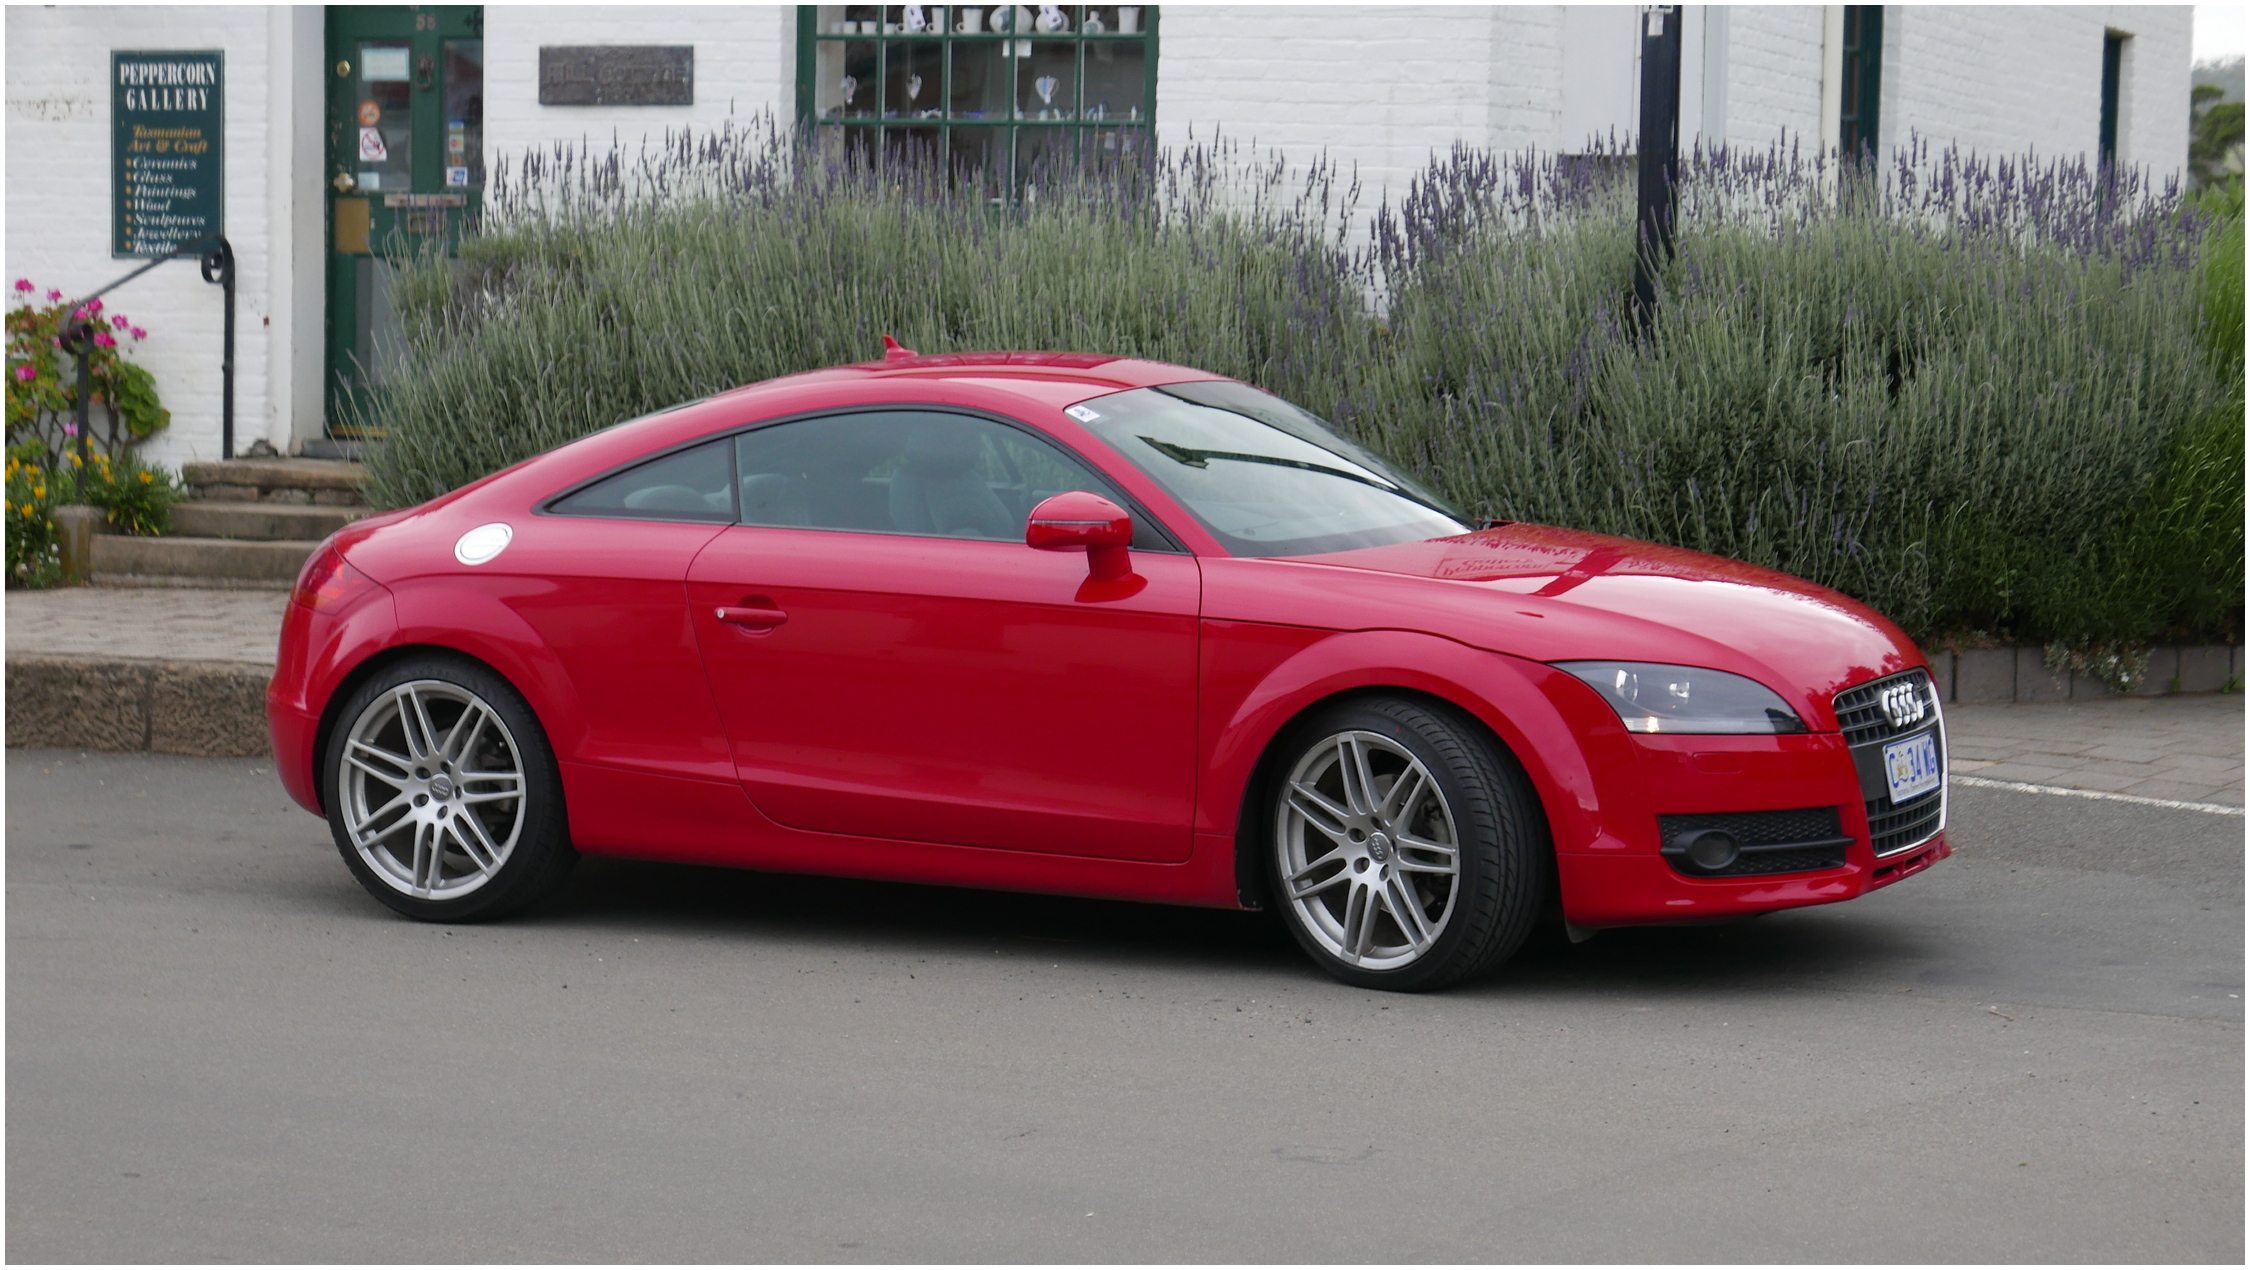 Audi TT - Overdrive Car Hire